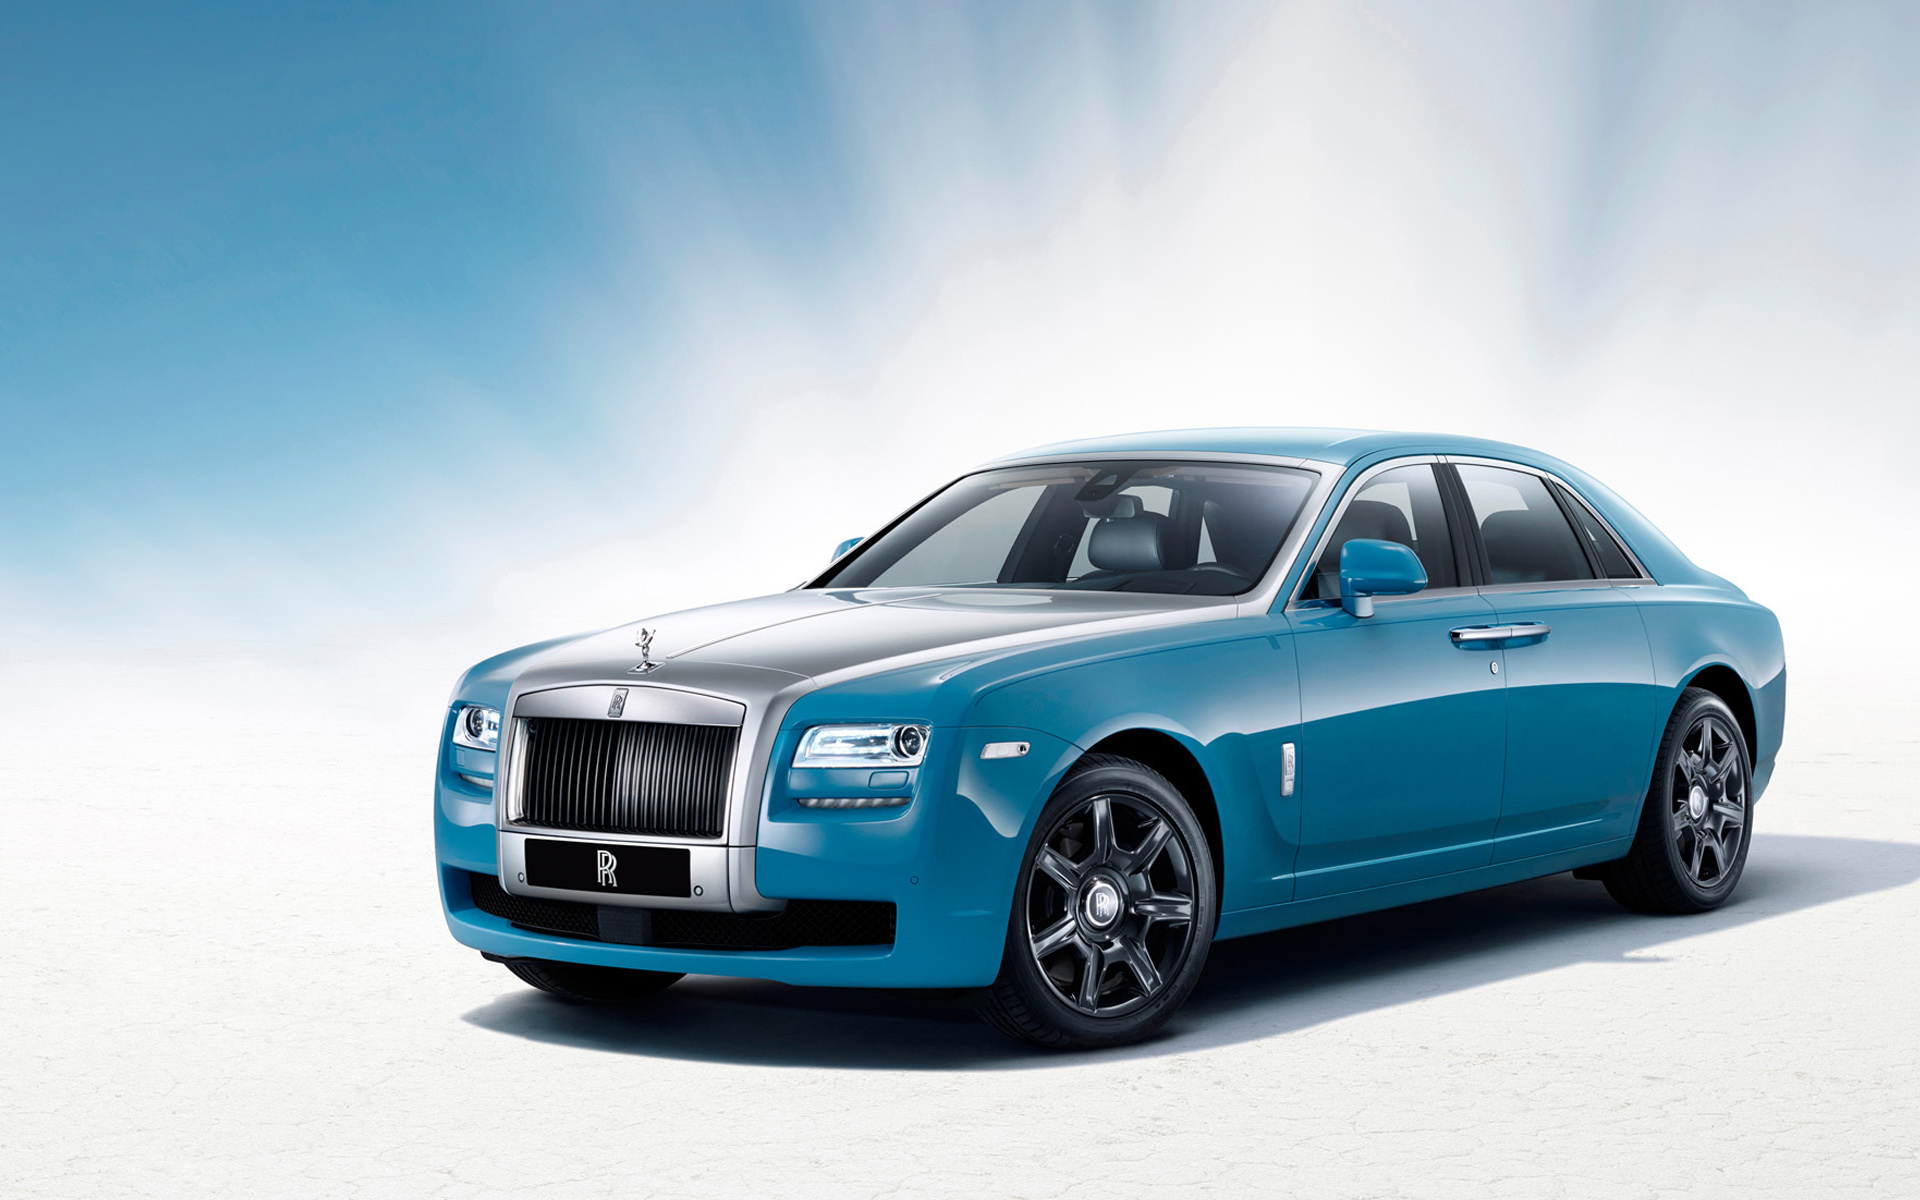 2013 Rolls Royce Centenary Alpine Trial